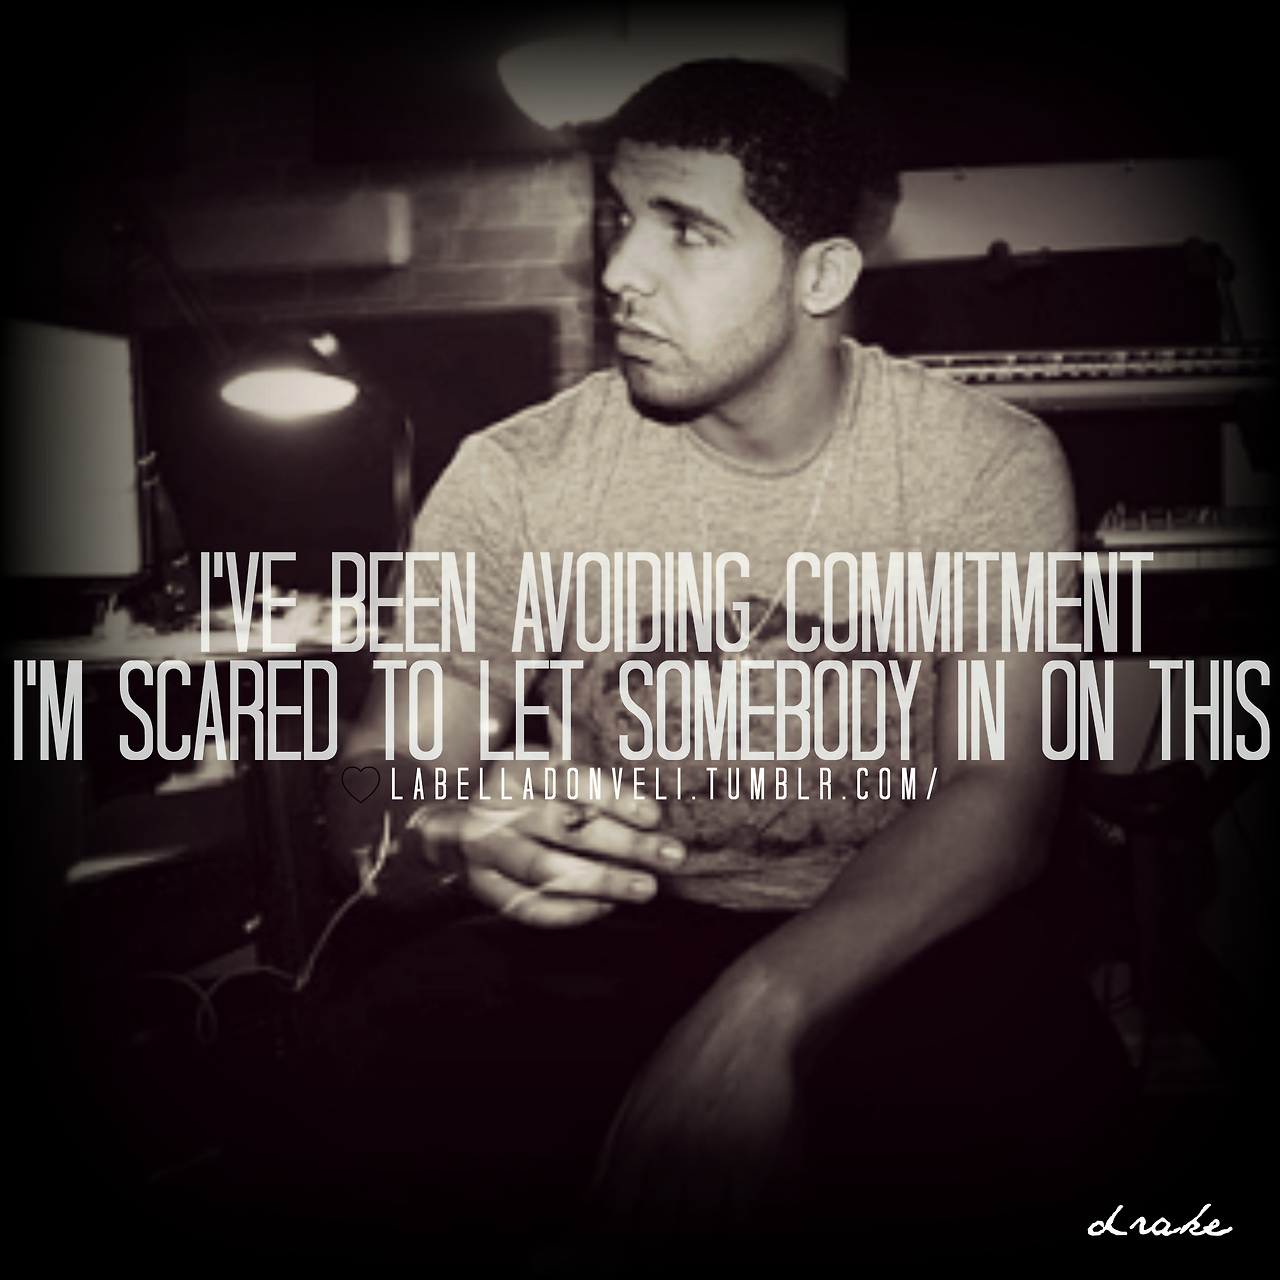 Quotes About Love Tumblr 2015 : 269487854-tumblr-quotes-about-life-drake---cool-tumblr-quotes-about ...